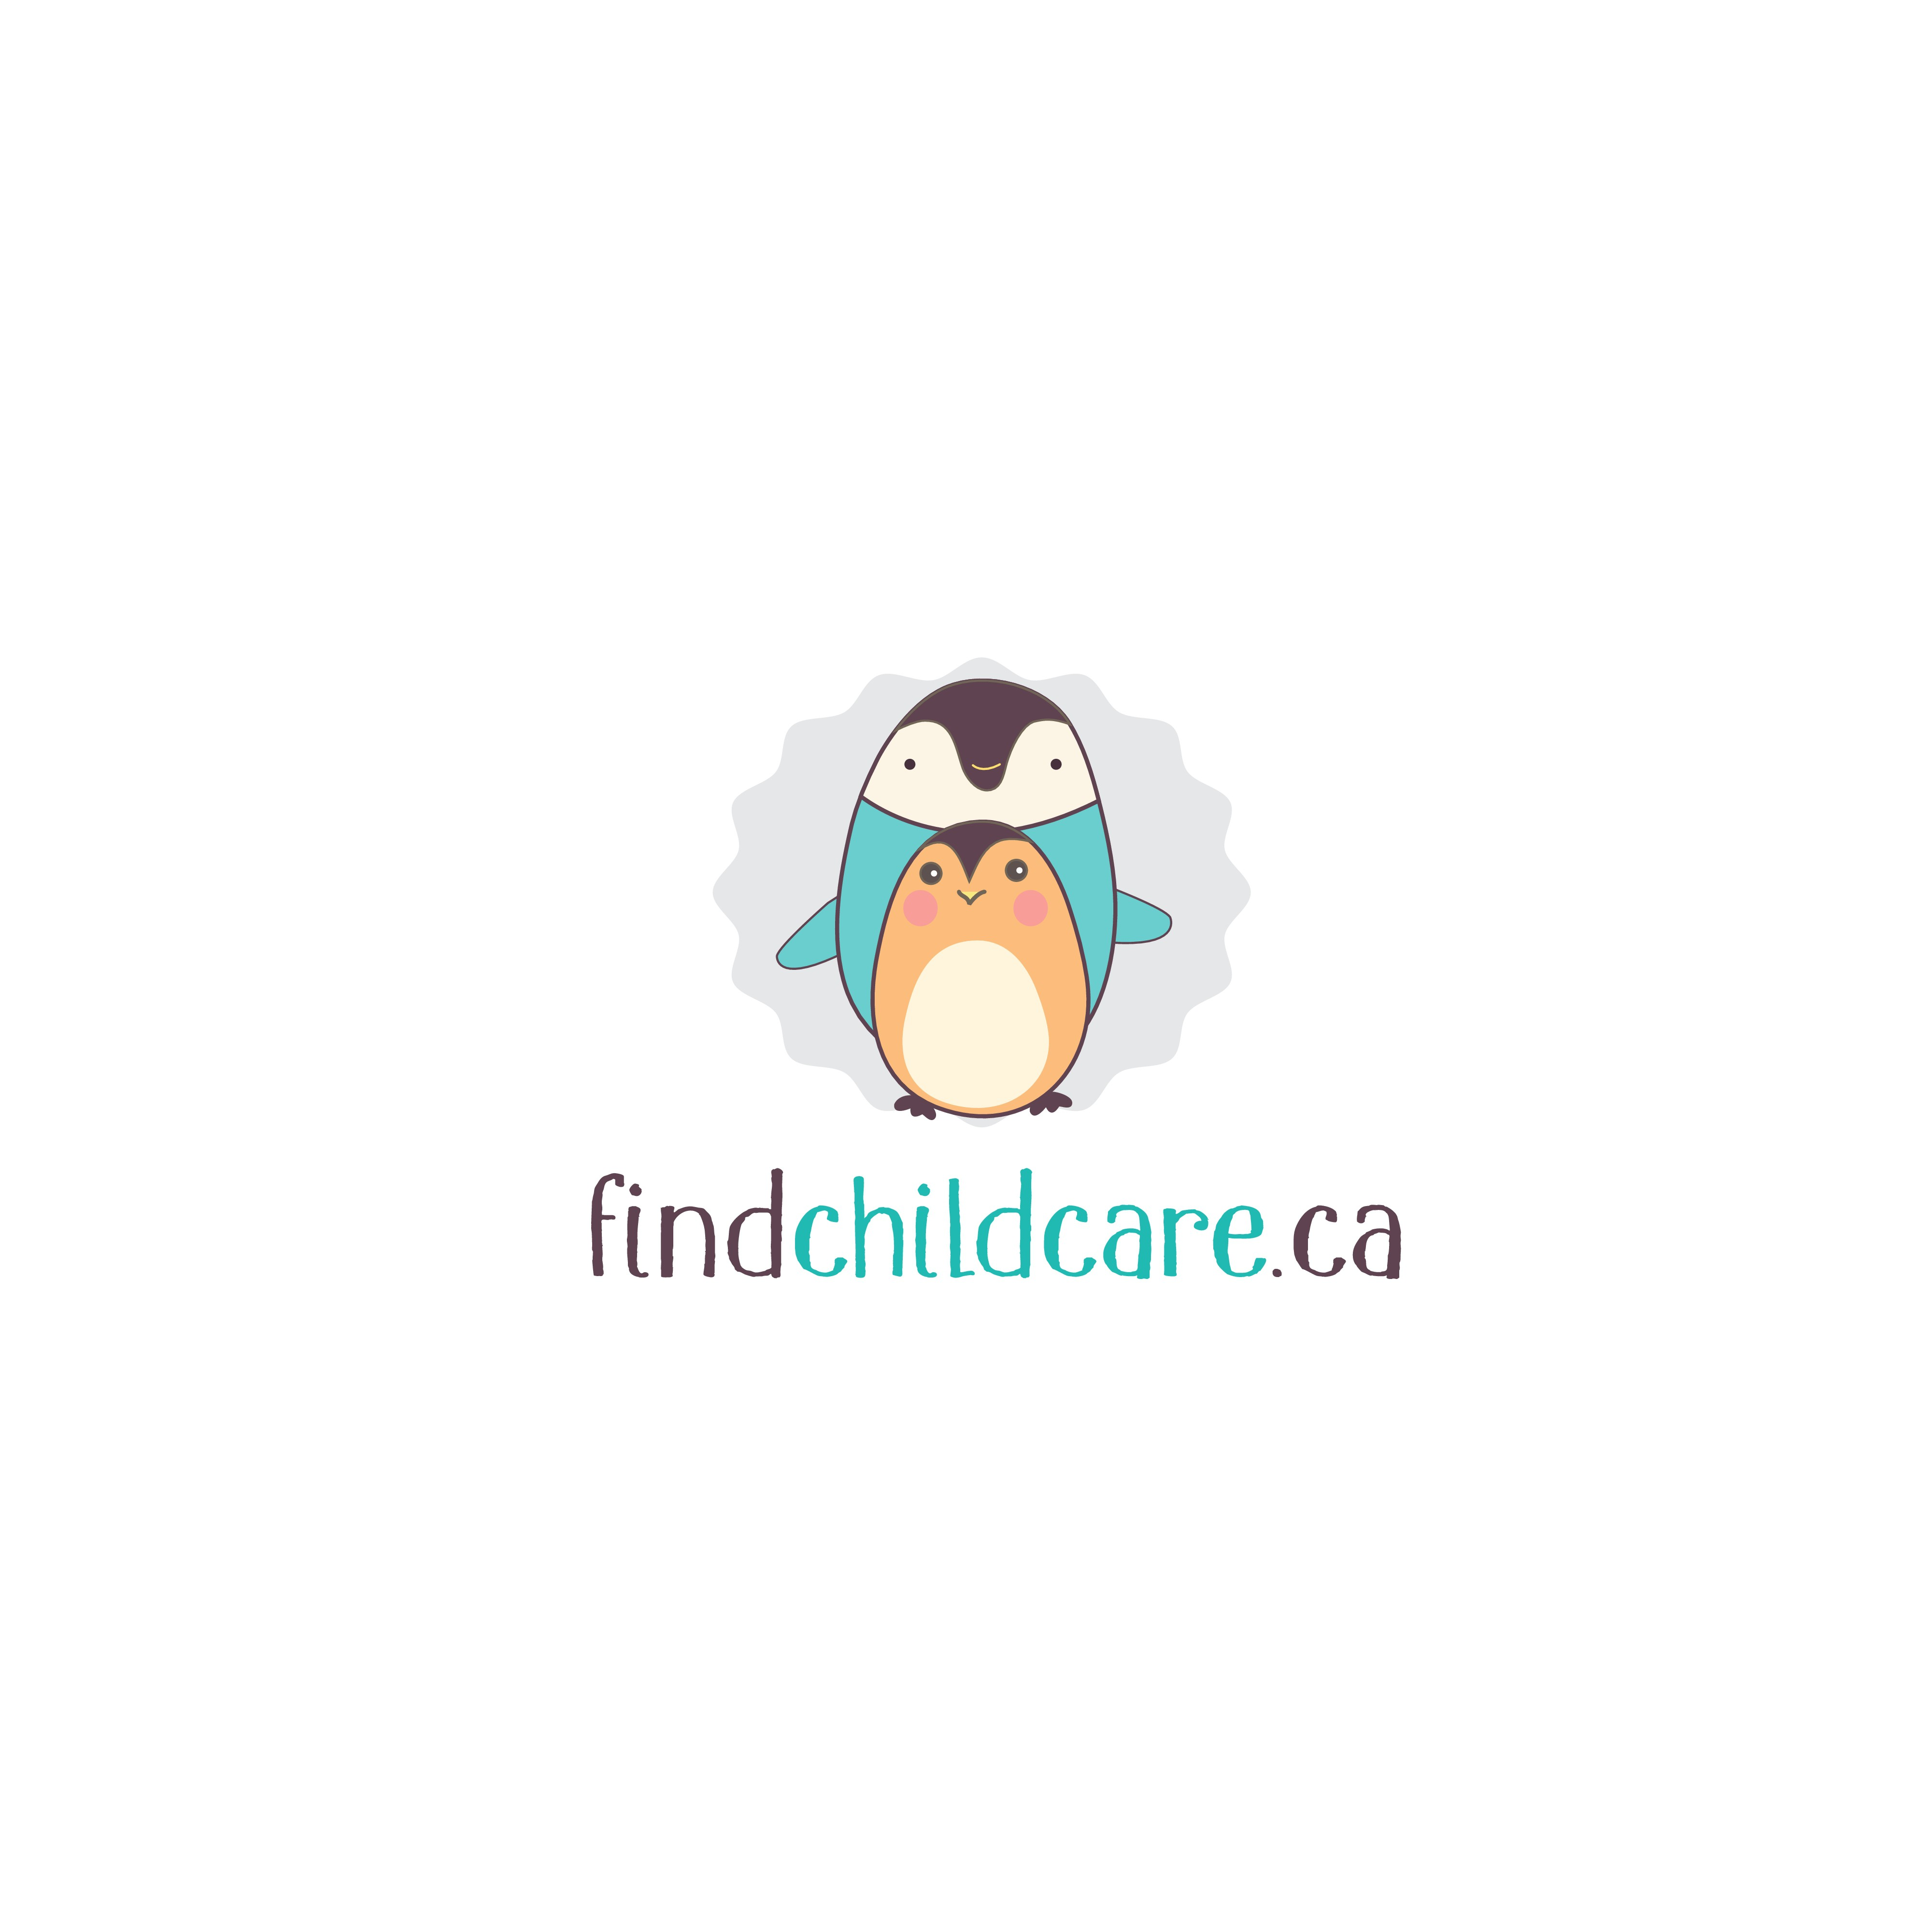 IMAGINATION REQUIRED for the logo of a online childcare directory!